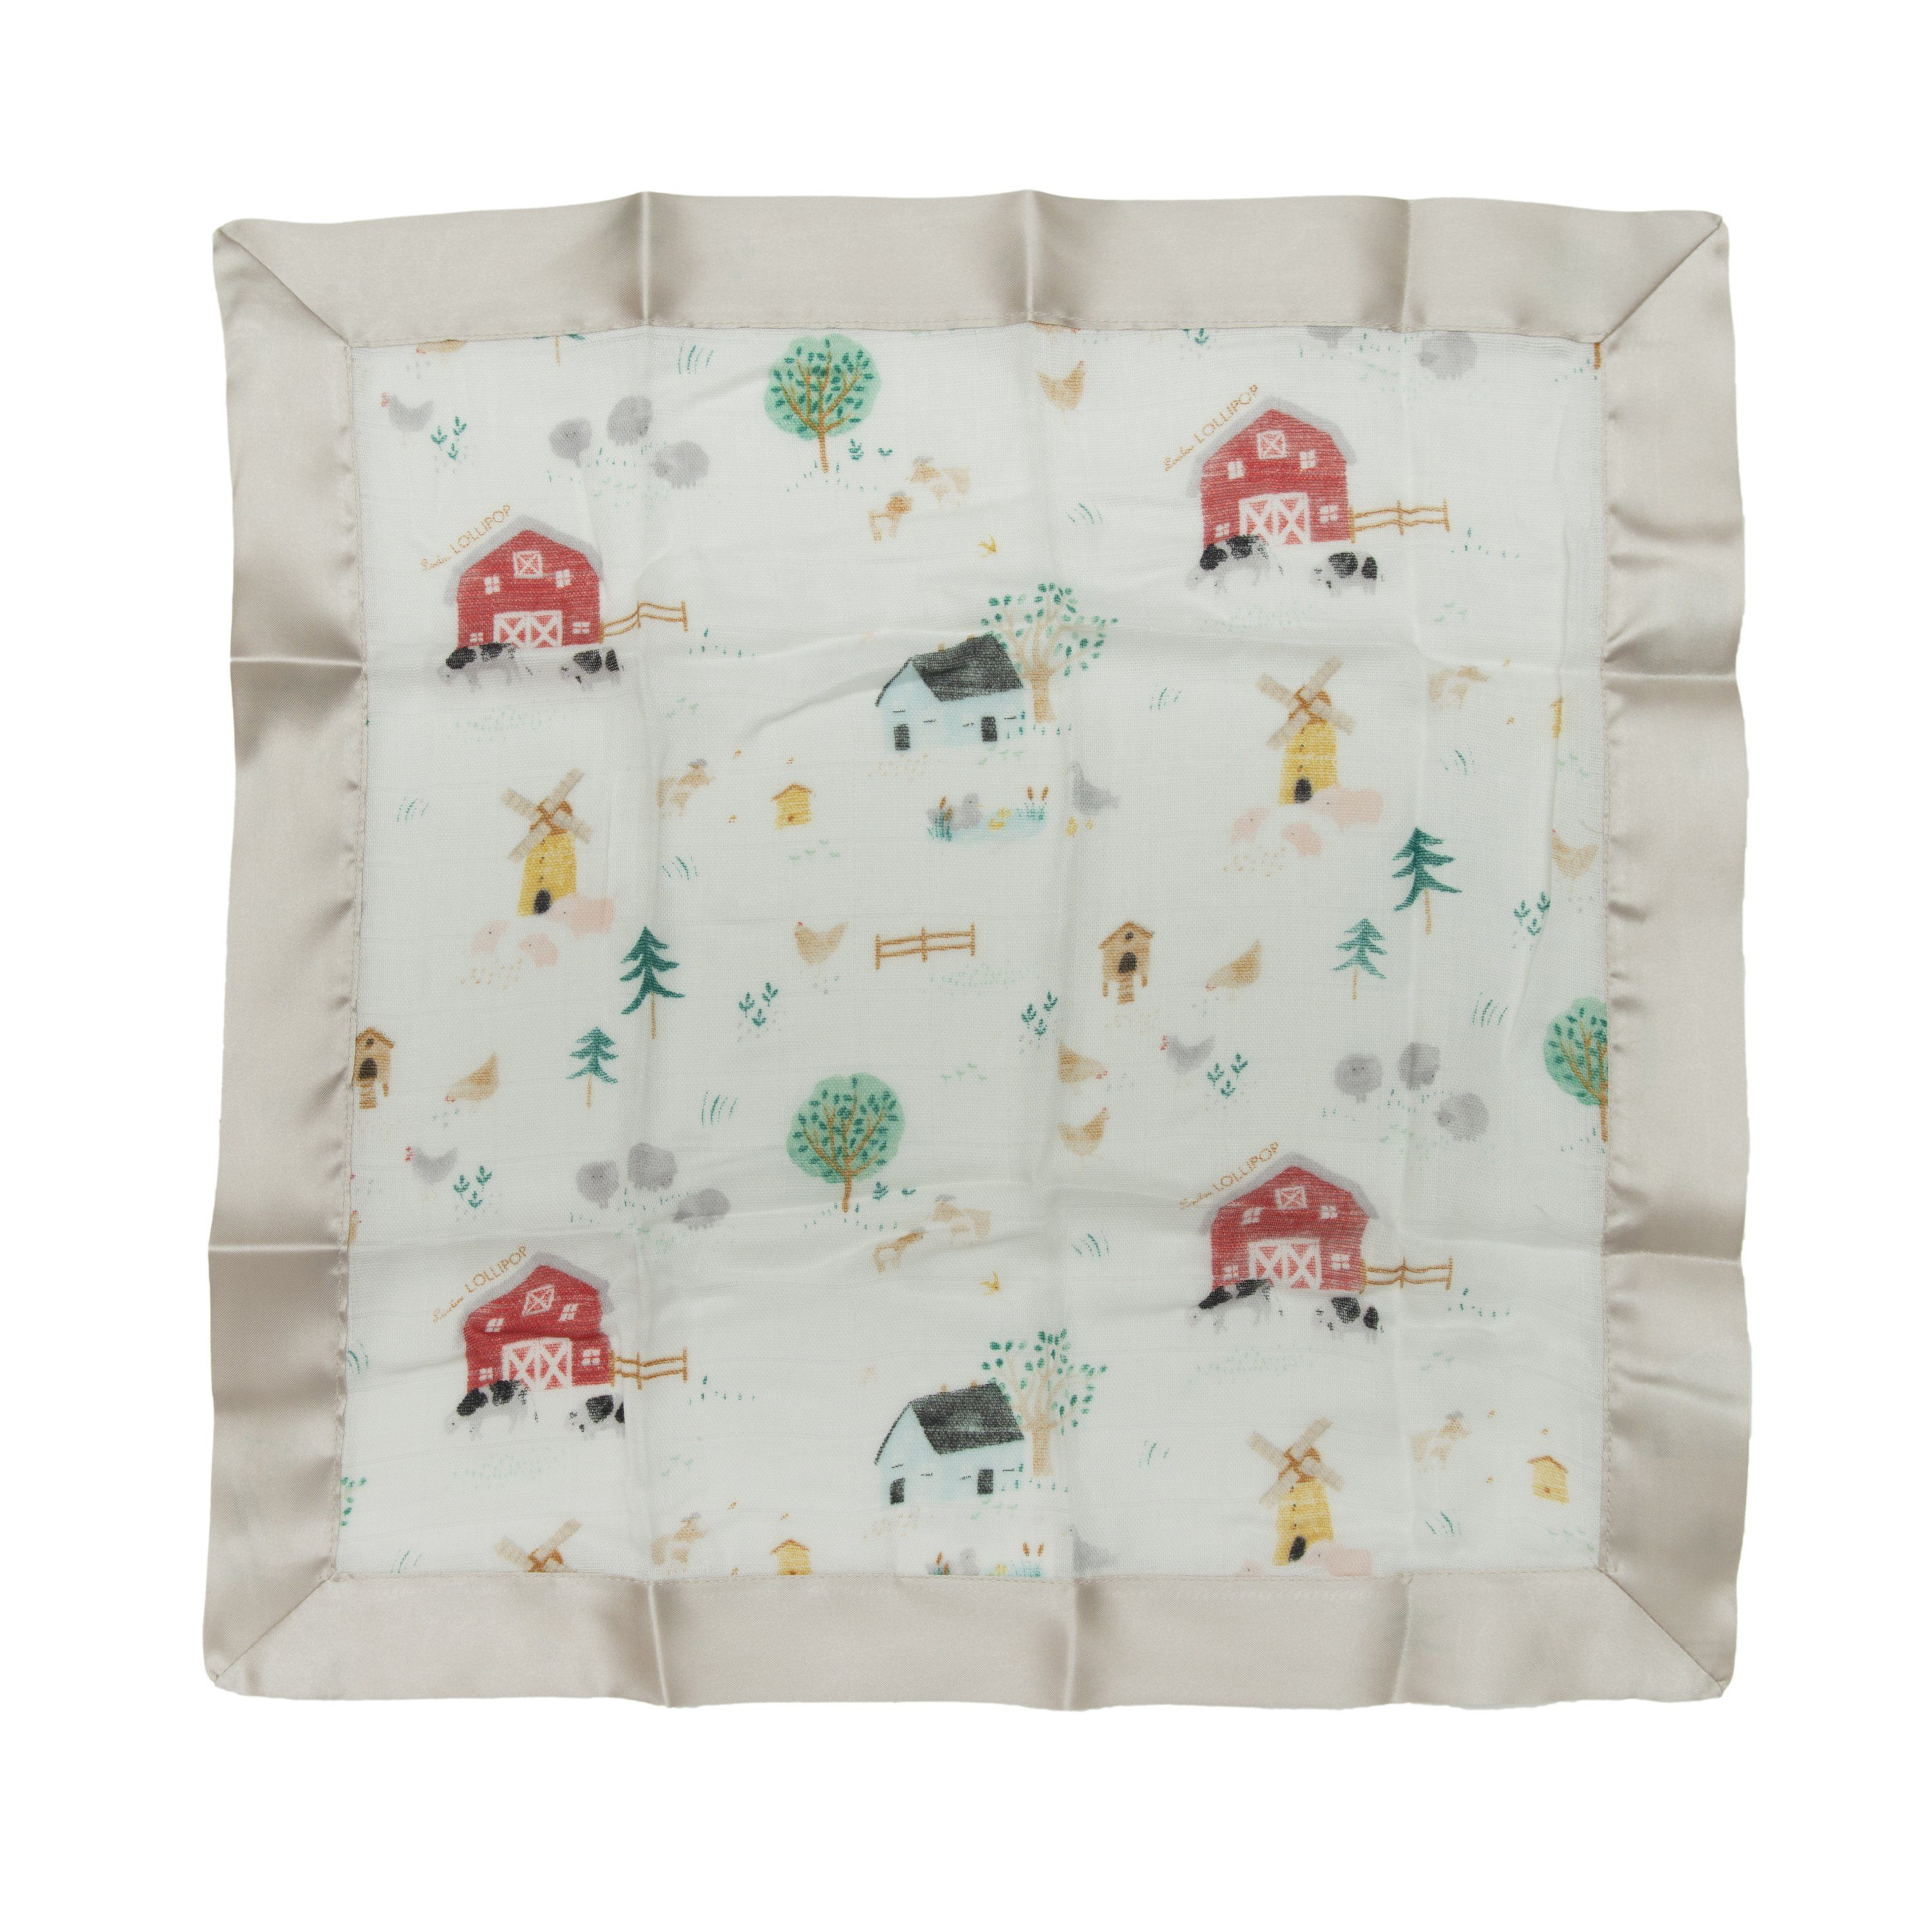 Farm Animals Security Blankets - 2 pack - Project Nursery